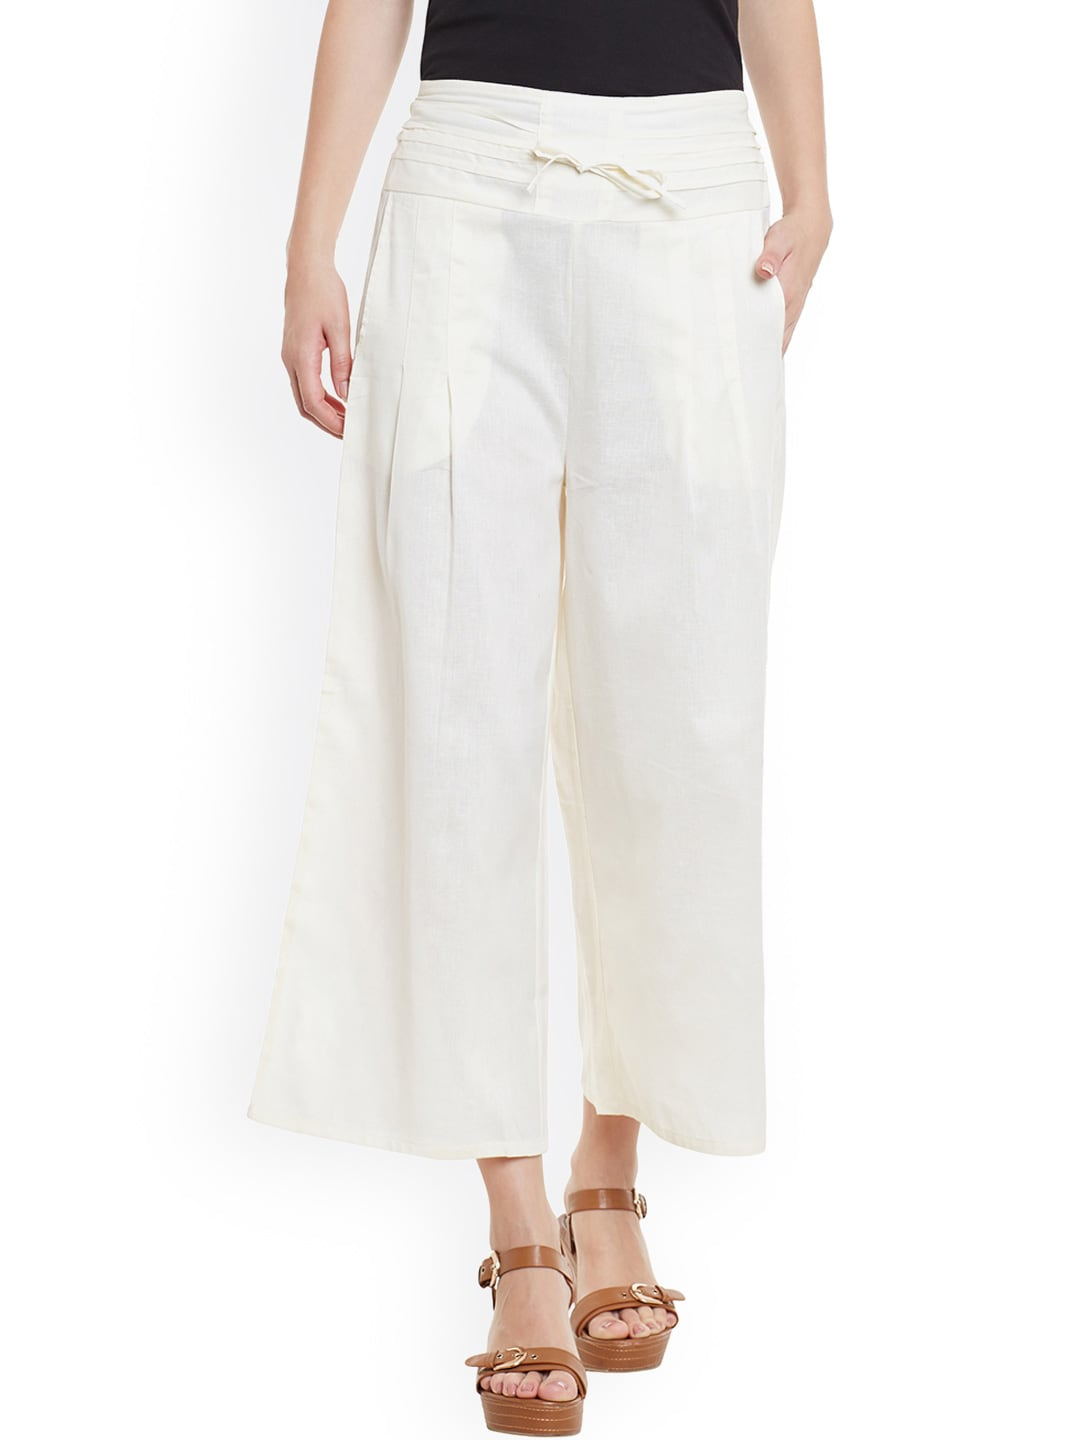 Palazzo Trousers   Buy Palazzo Trousers Online in India at Best Price 272aa3d0f8e0